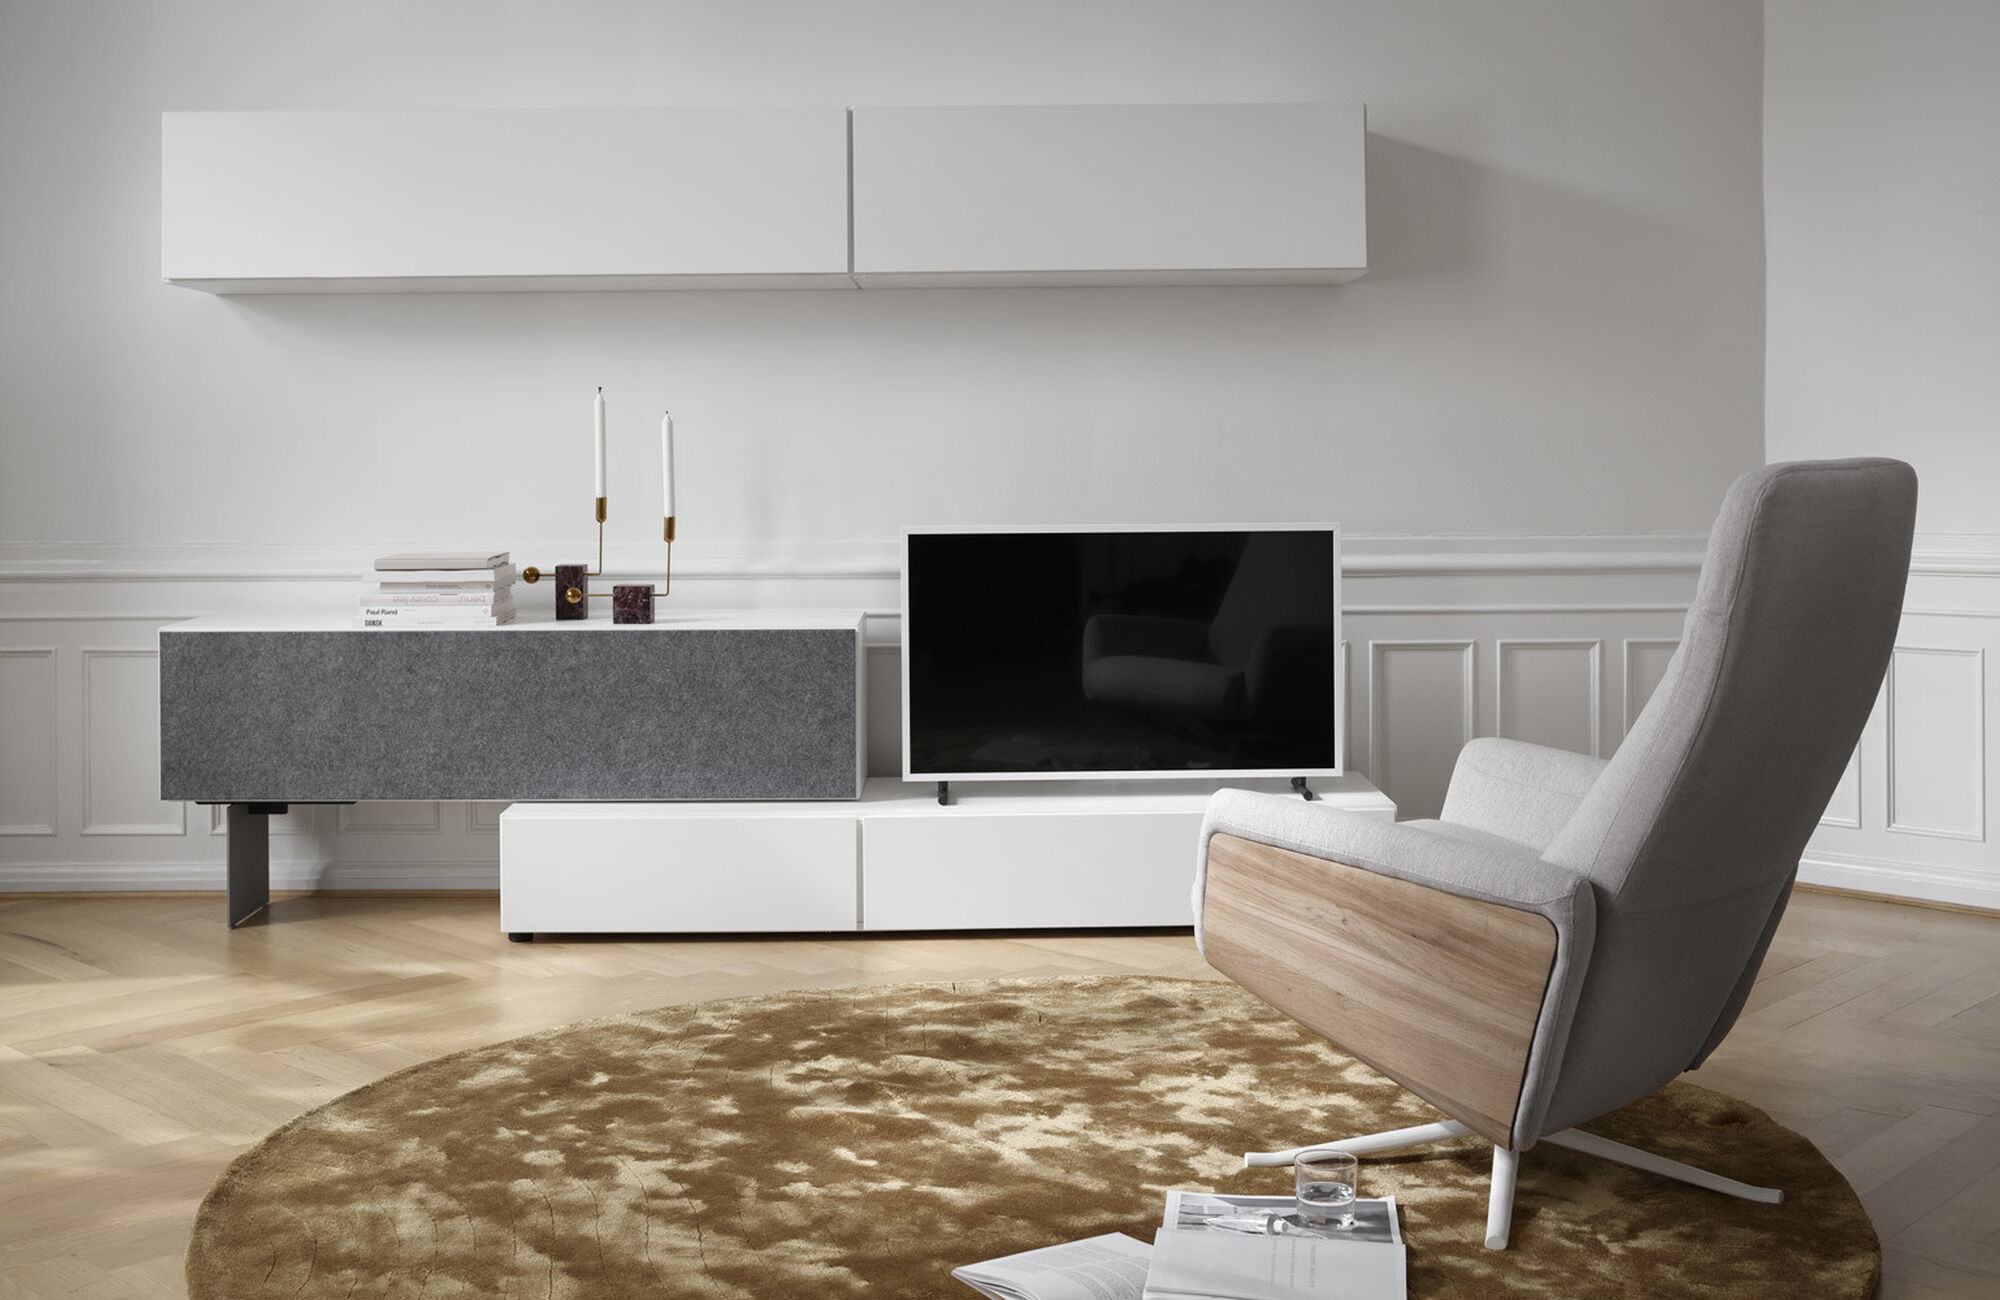 Wall systems - Lugano wall system with drawer and drop down door